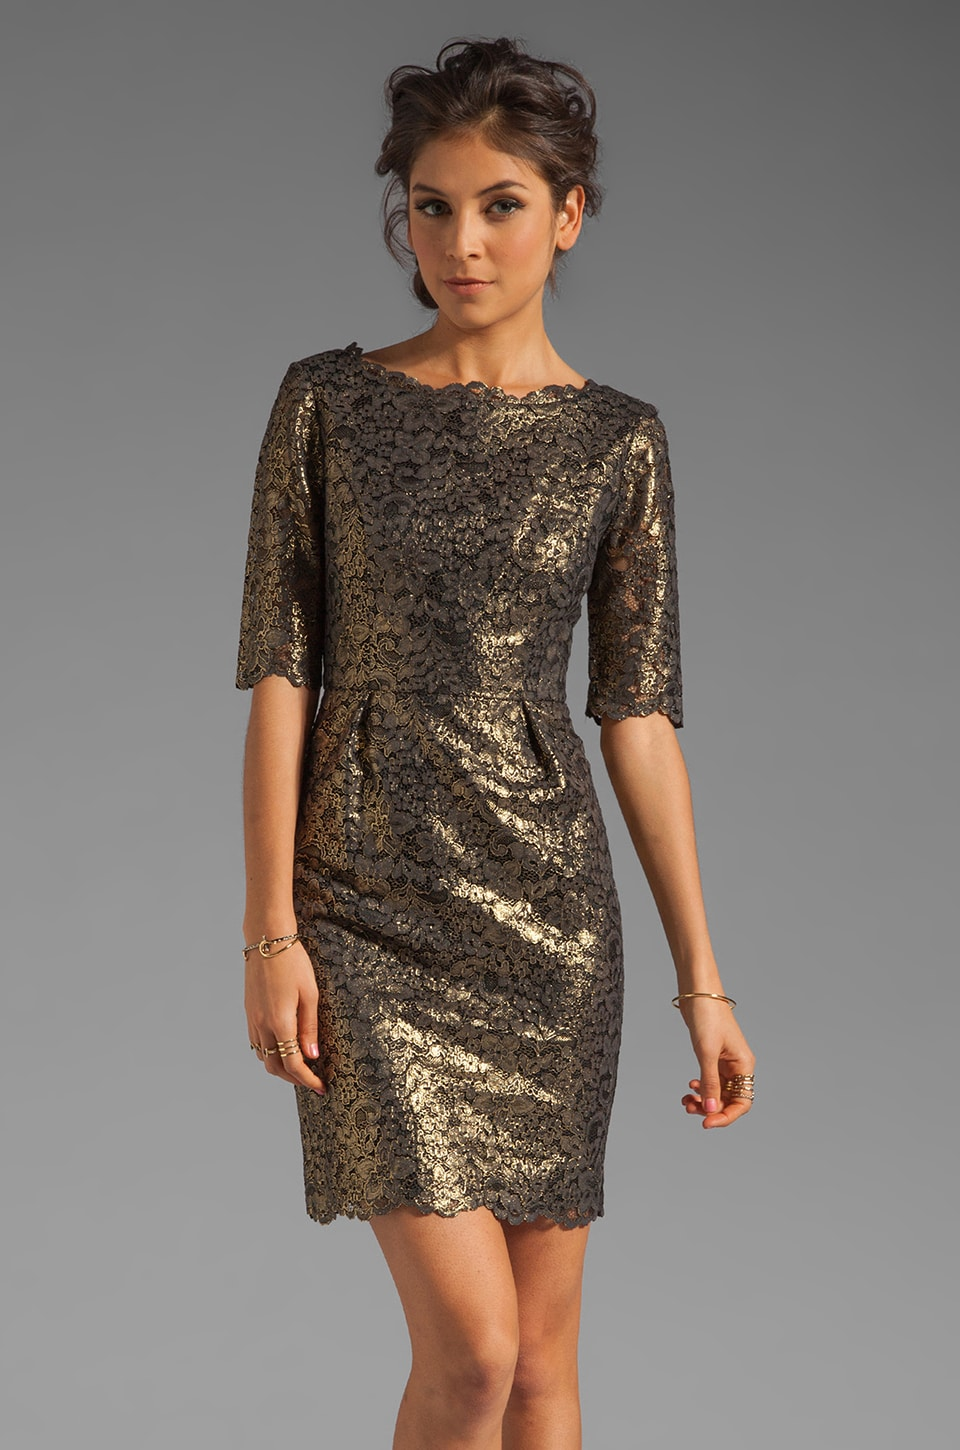 Shoshanna Metallic Guipure Lace Minka Dress in Gold/Black